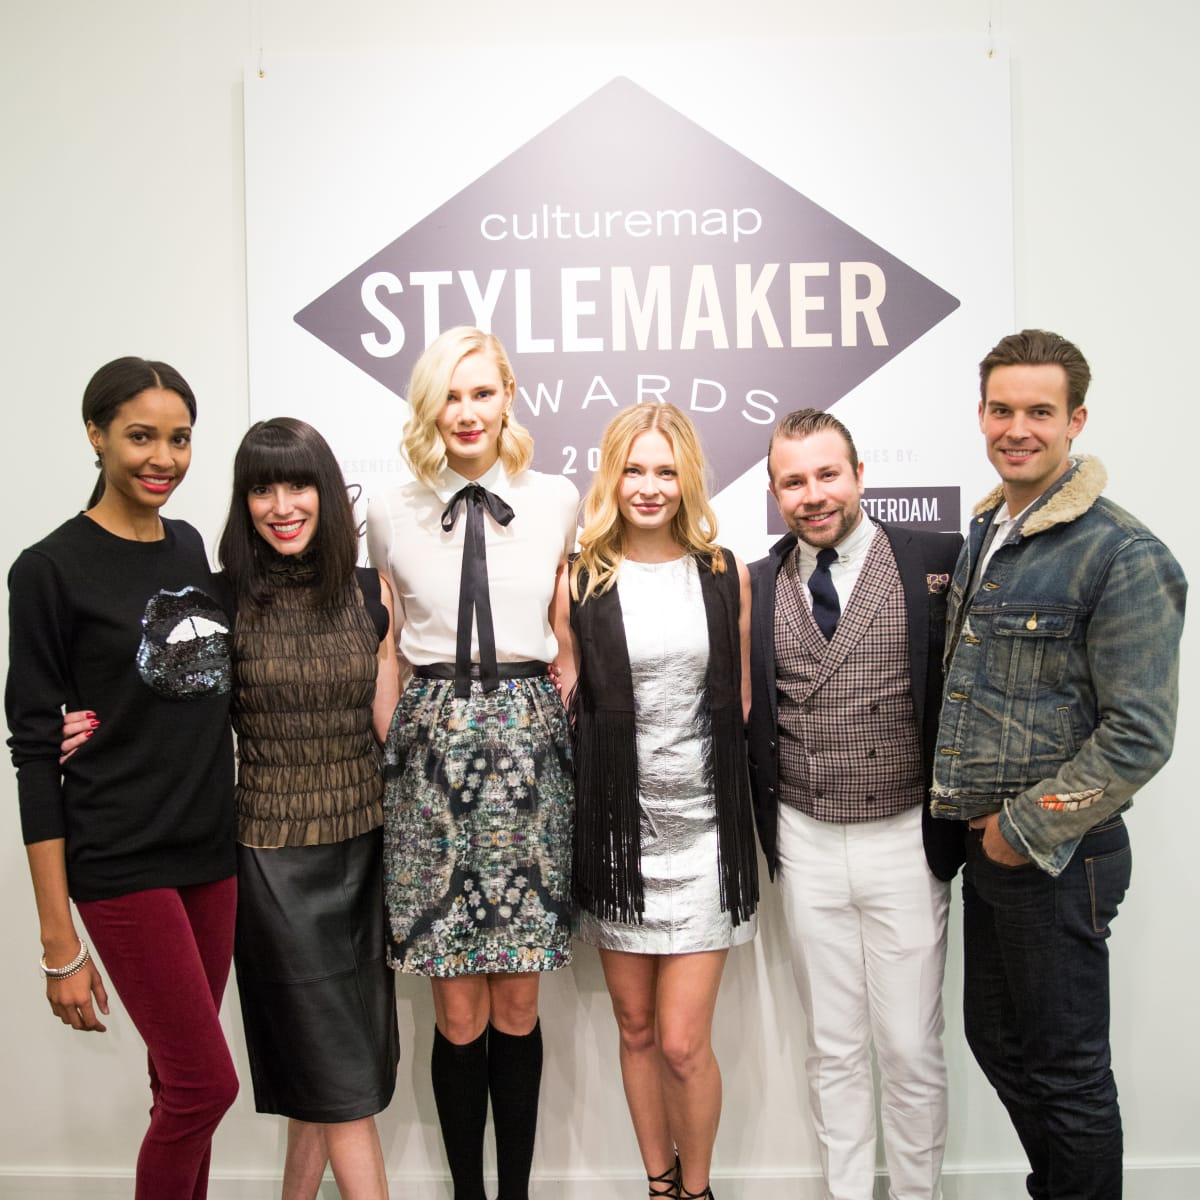 The two Stylemaker winners